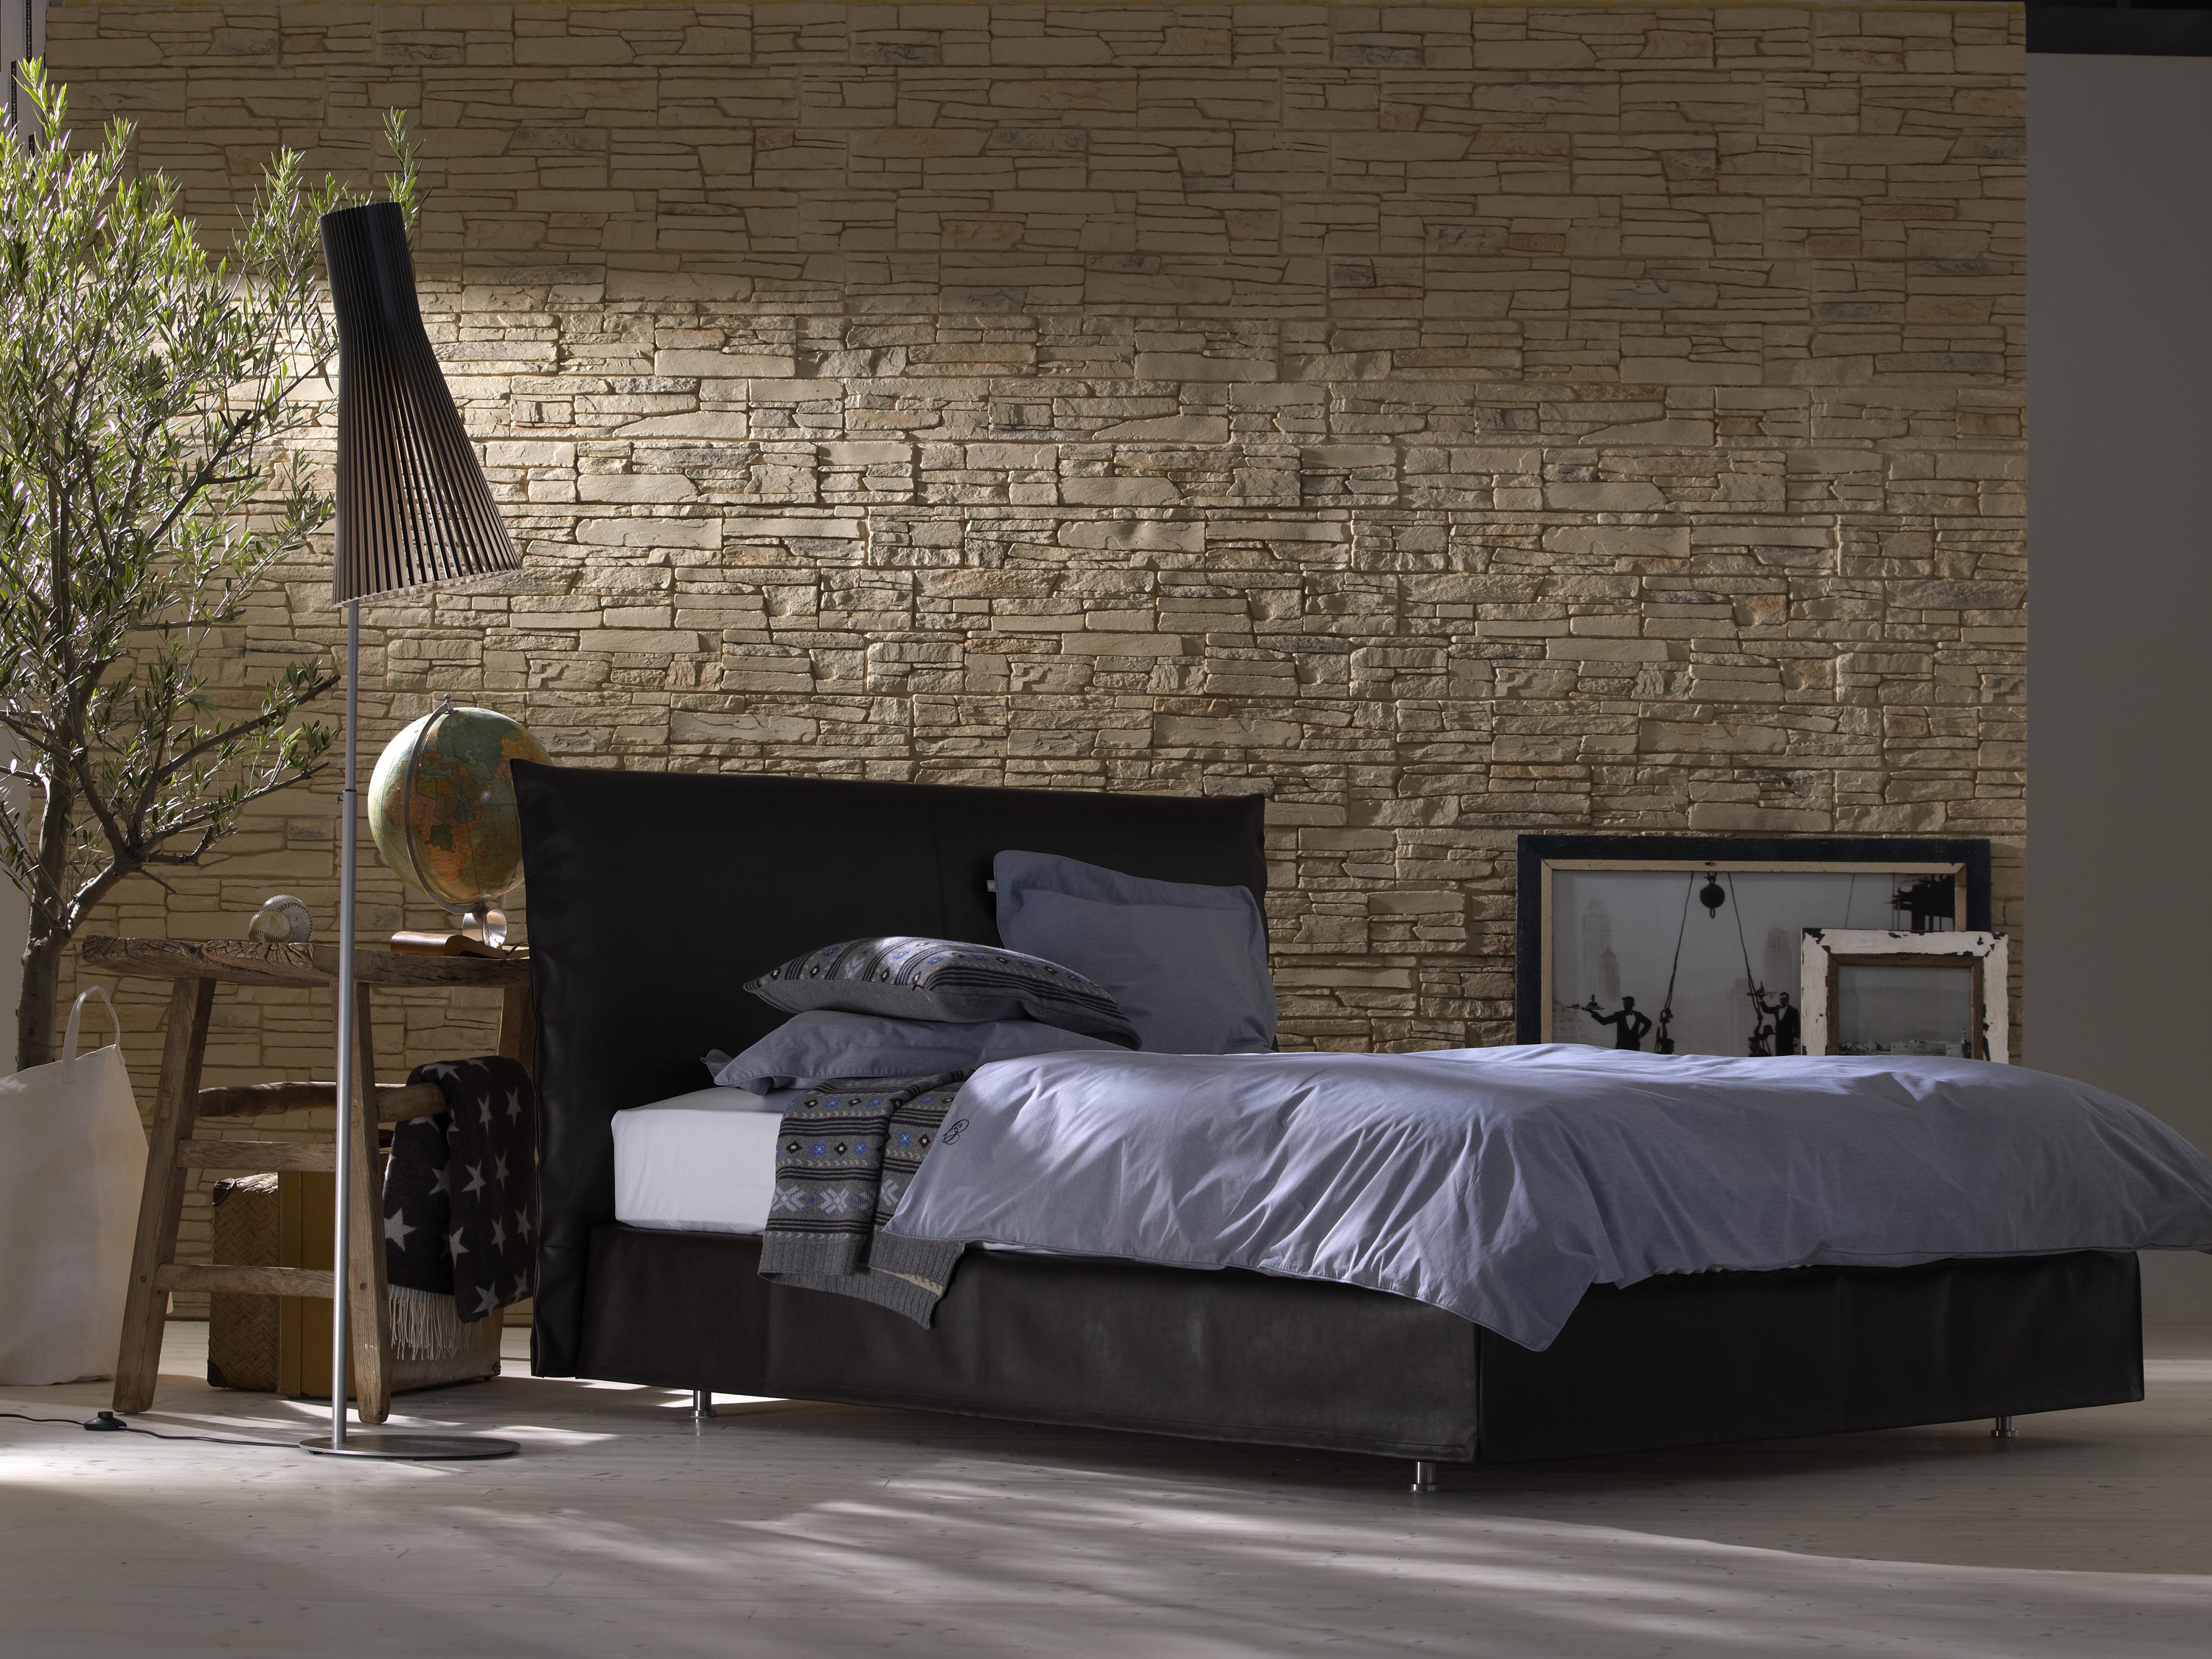 loft doppelbetten von schramm architonic. Black Bedroom Furniture Sets. Home Design Ideas